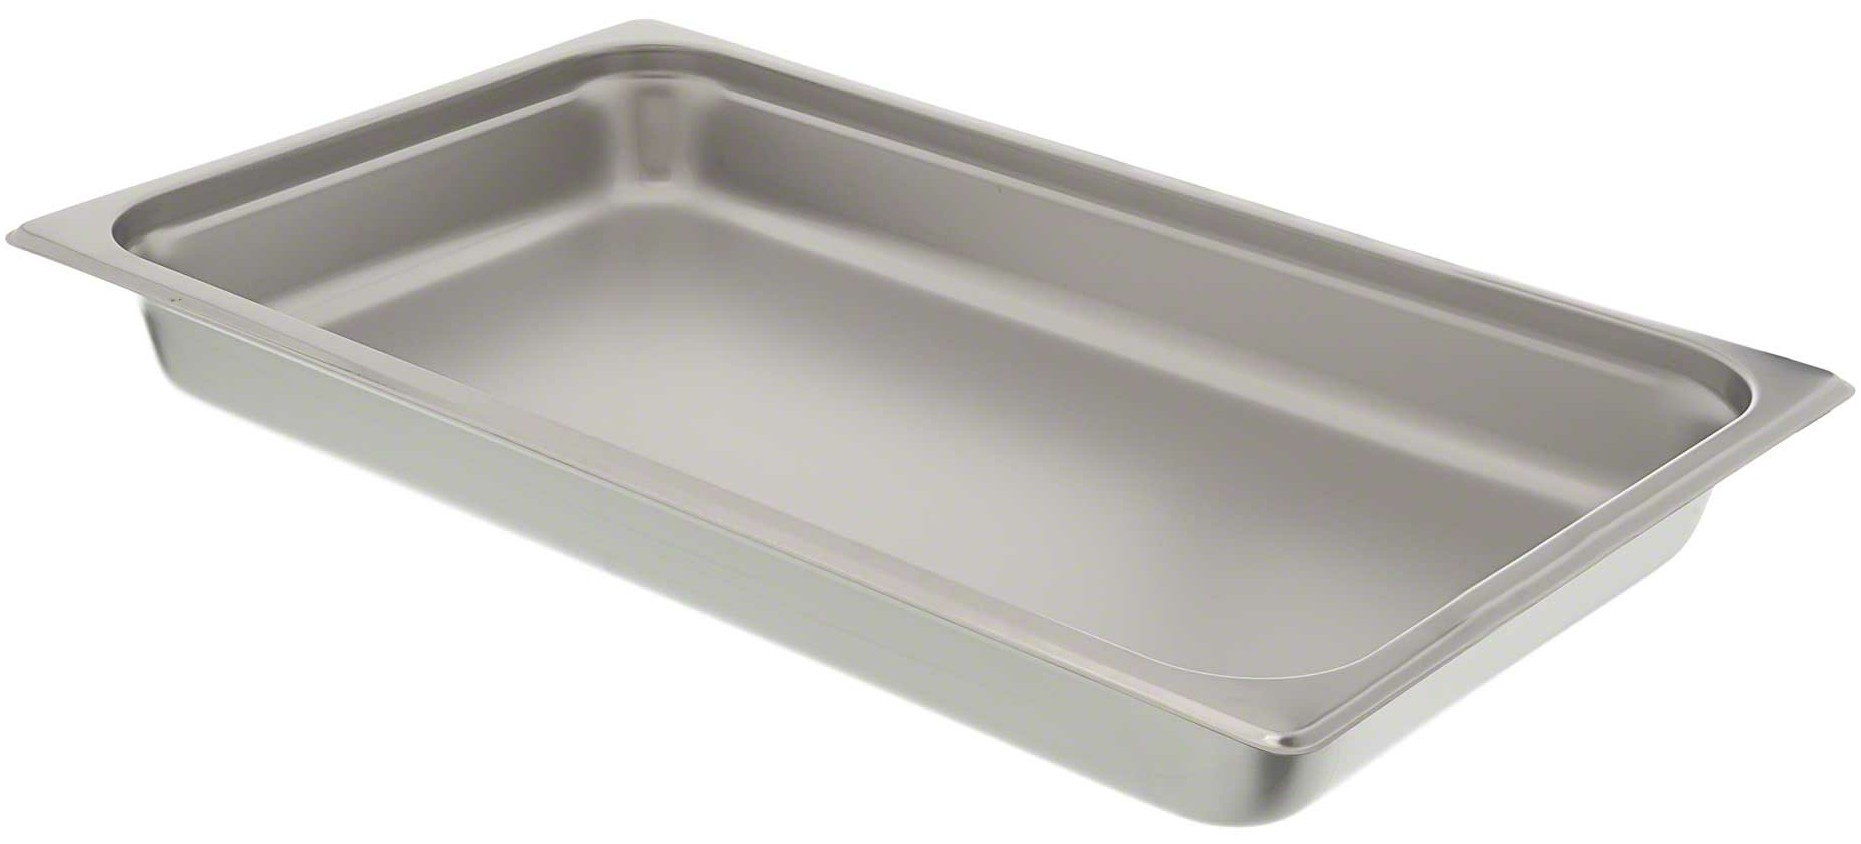 "Economy Weight 2 1/2"" Stainless Steel Steam Table Pan"